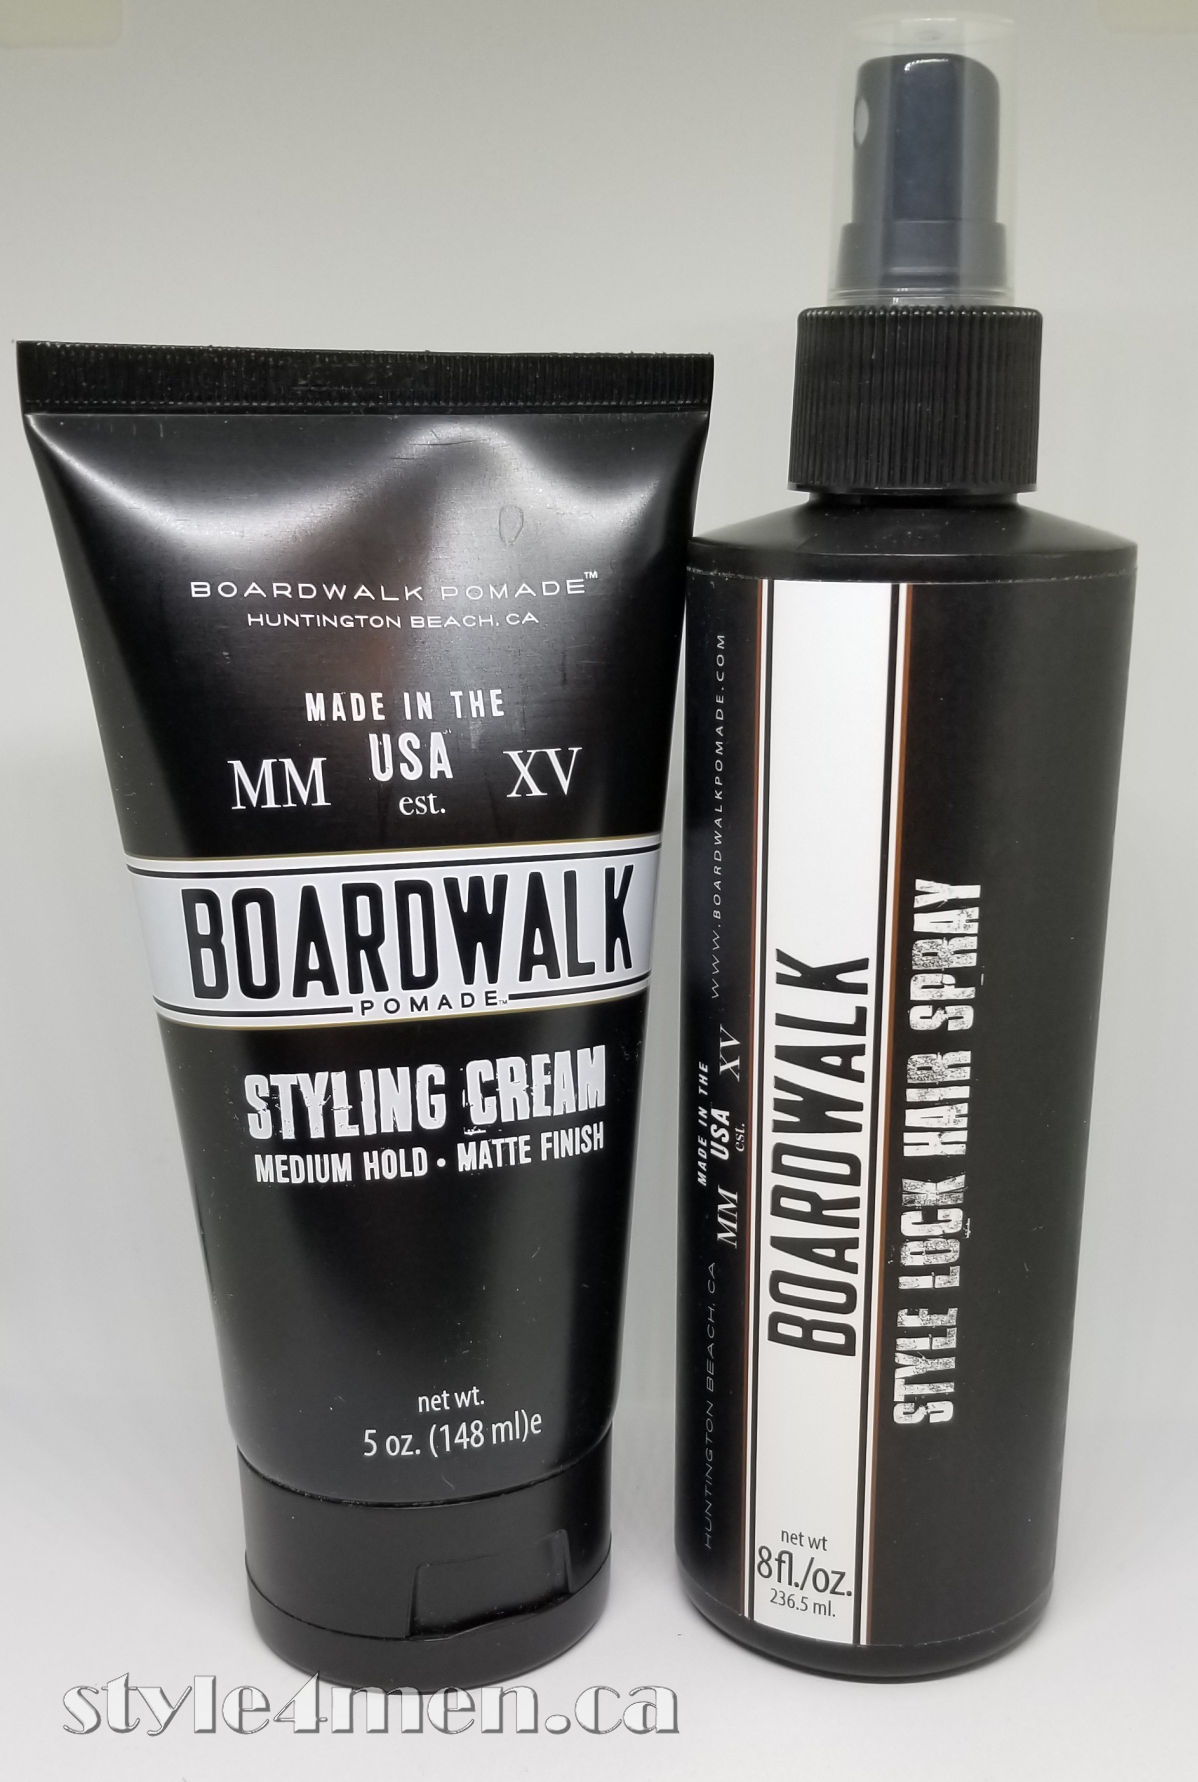 BOARDWALK does it again with their Styling Cream and Hair Spray